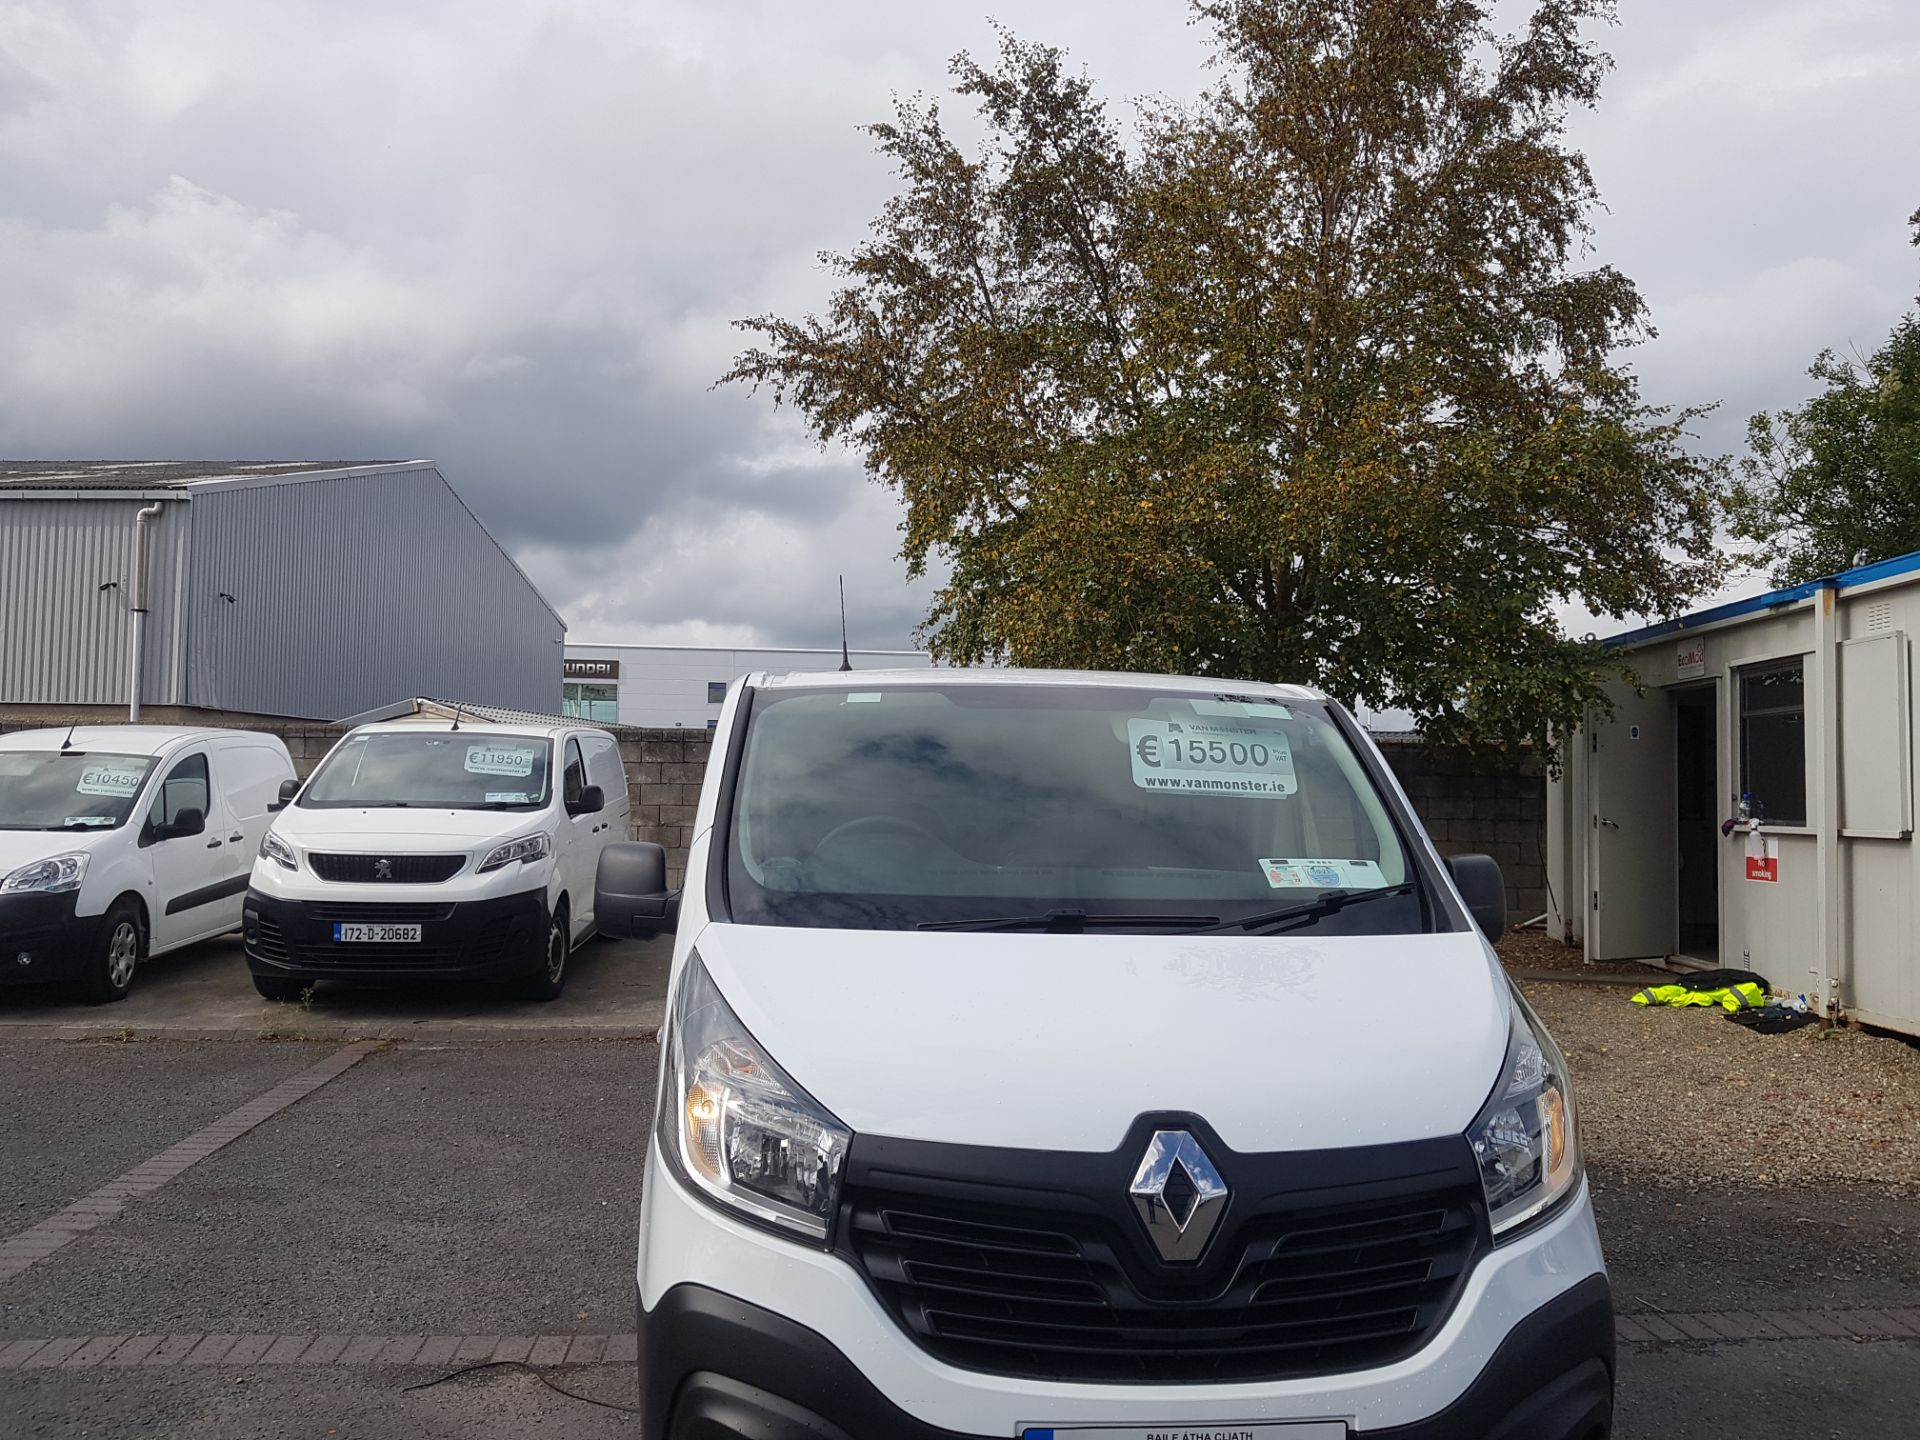 2018 Renault Trafic LL29 DCI 120 BUSINESS 3DR (181D11590) Image 8